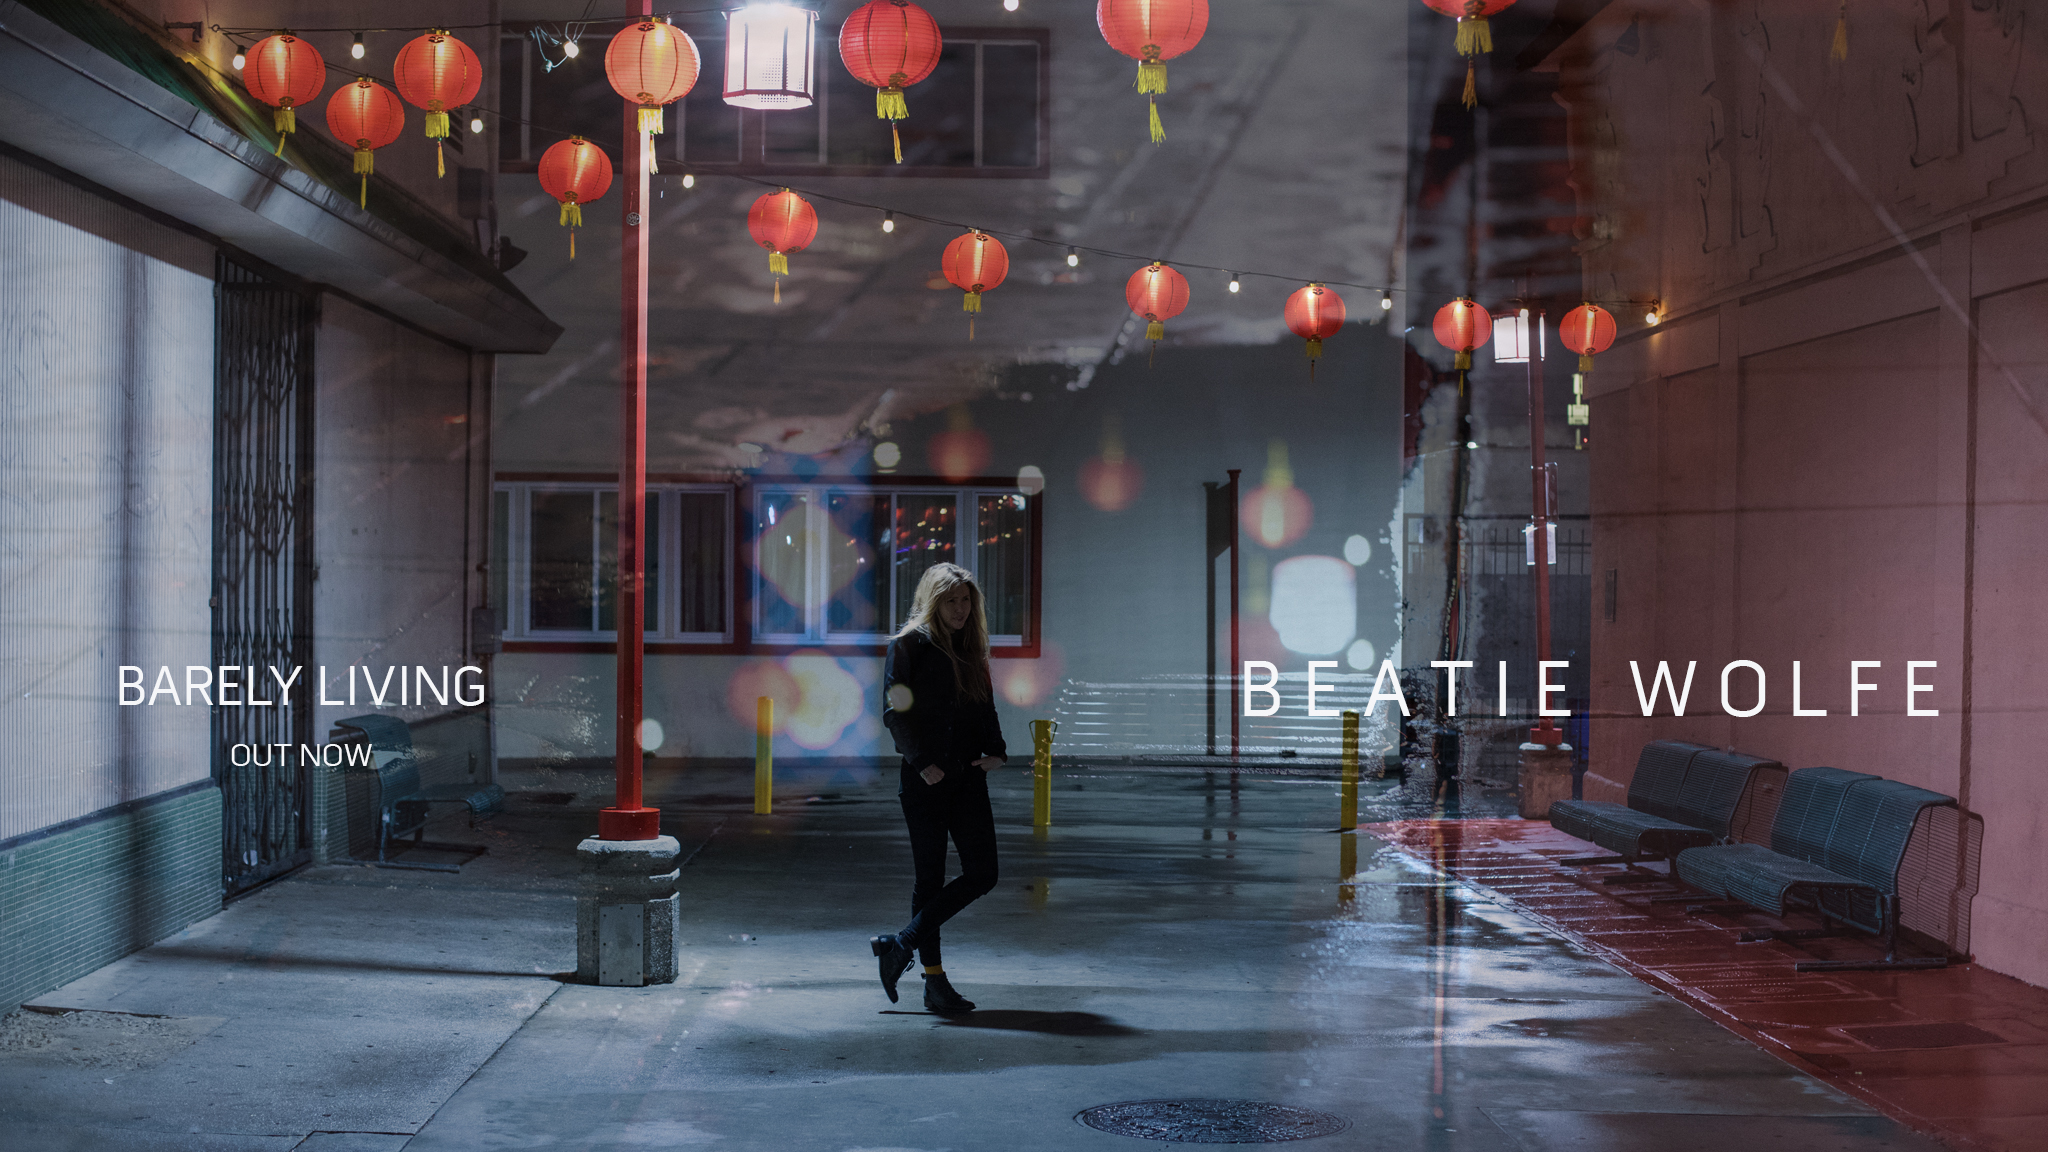 Barely Living by Beatie Wolfe